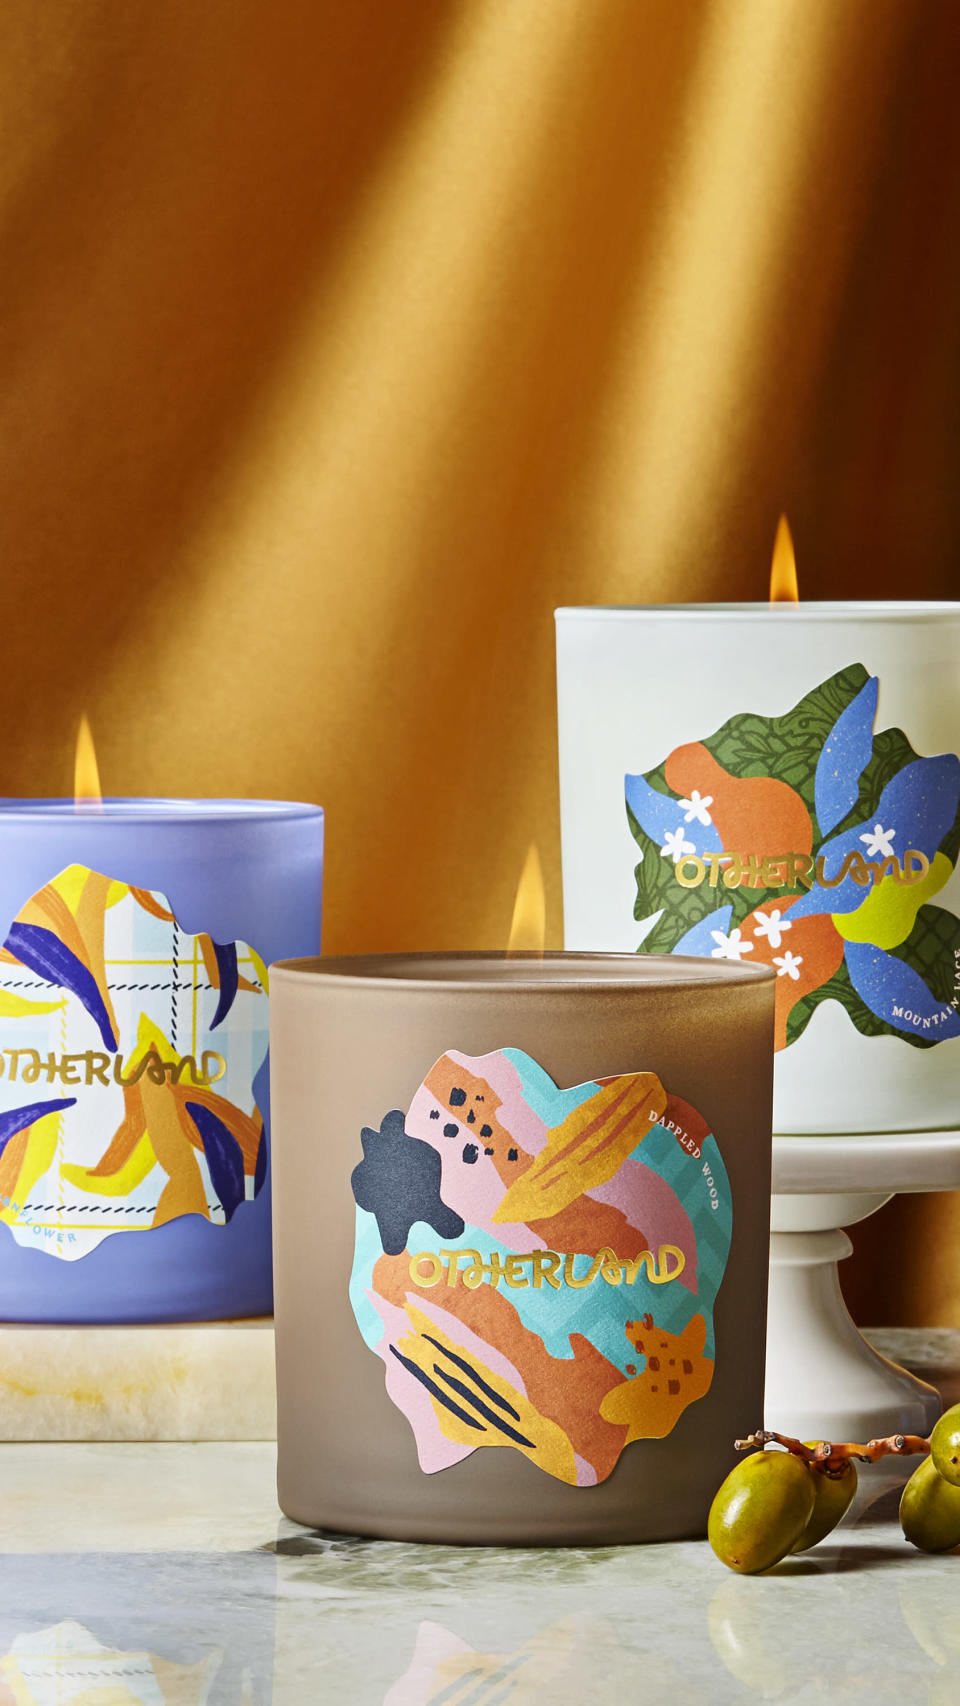 This photo provided by Otherland shows candles from the Manor House Weekend Fall Collection. Otherland's Manor House Weekend Fall candle collection features scents like sweet hay, corn silk, pear, cardamom and maple – a perfect welcoming gift for friends moving into a new home this fall. (Otherland via AP)